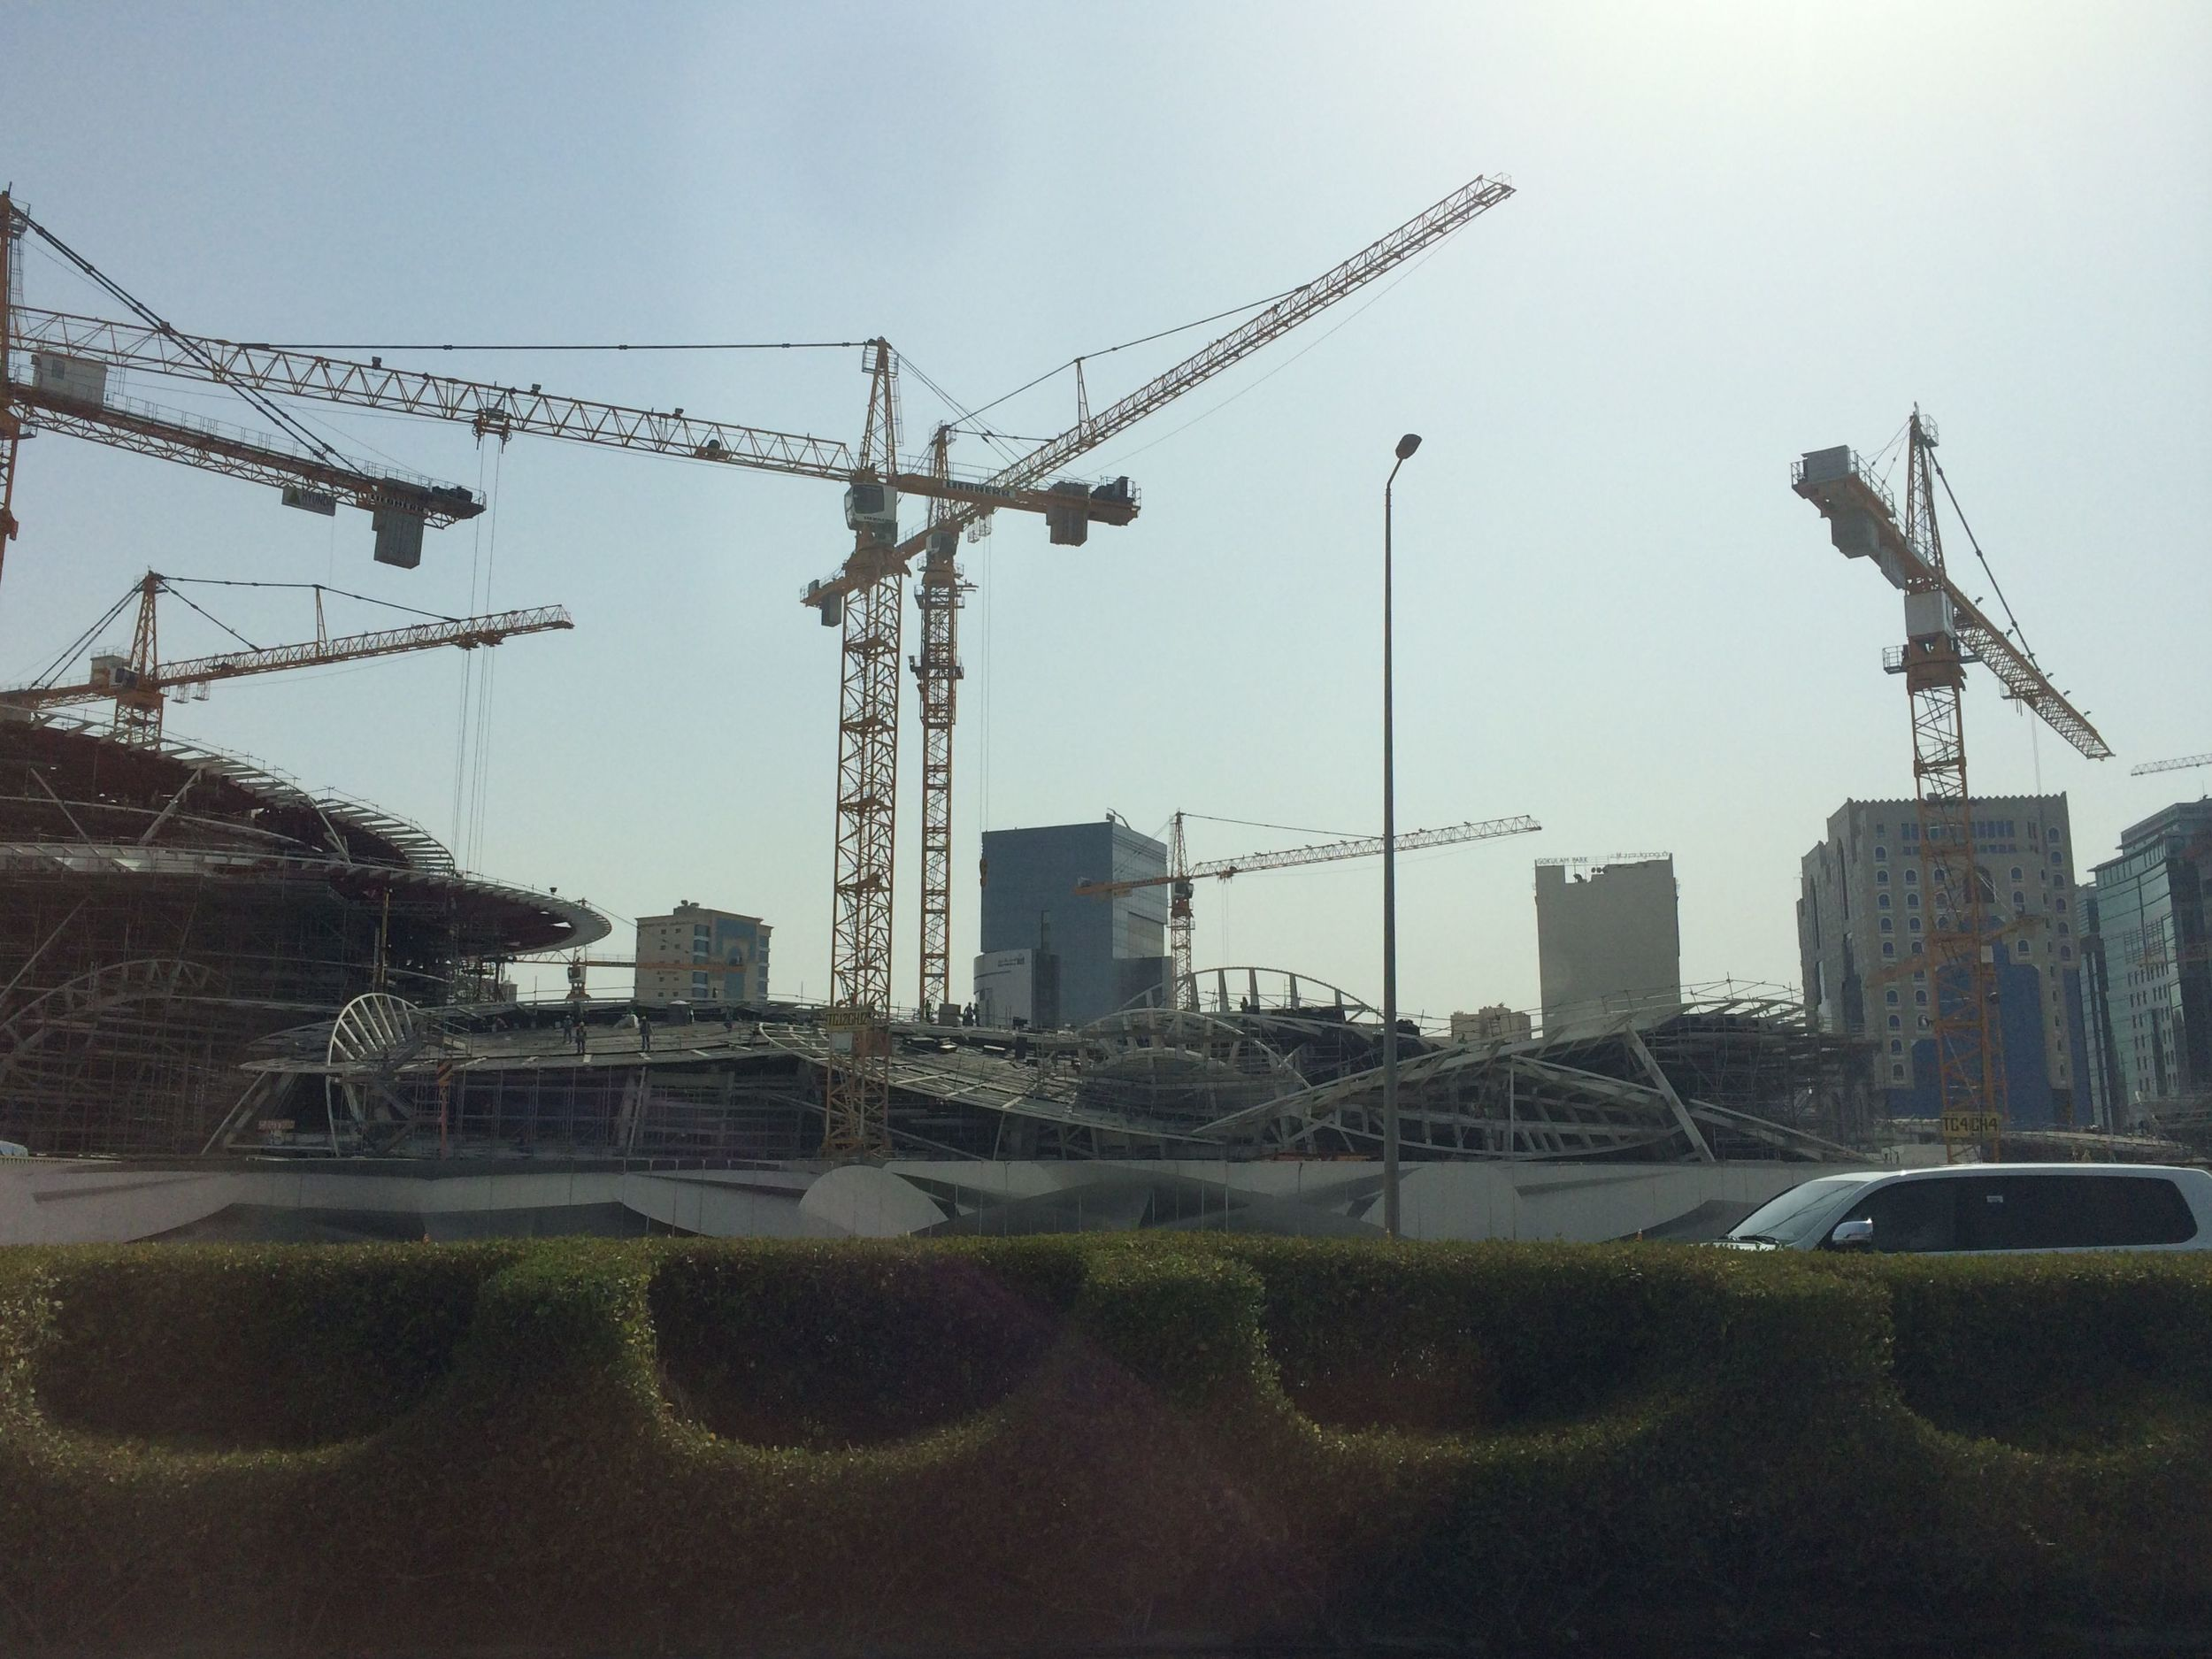 Fancy shrubbery and construction cranes in Doha, Qatar